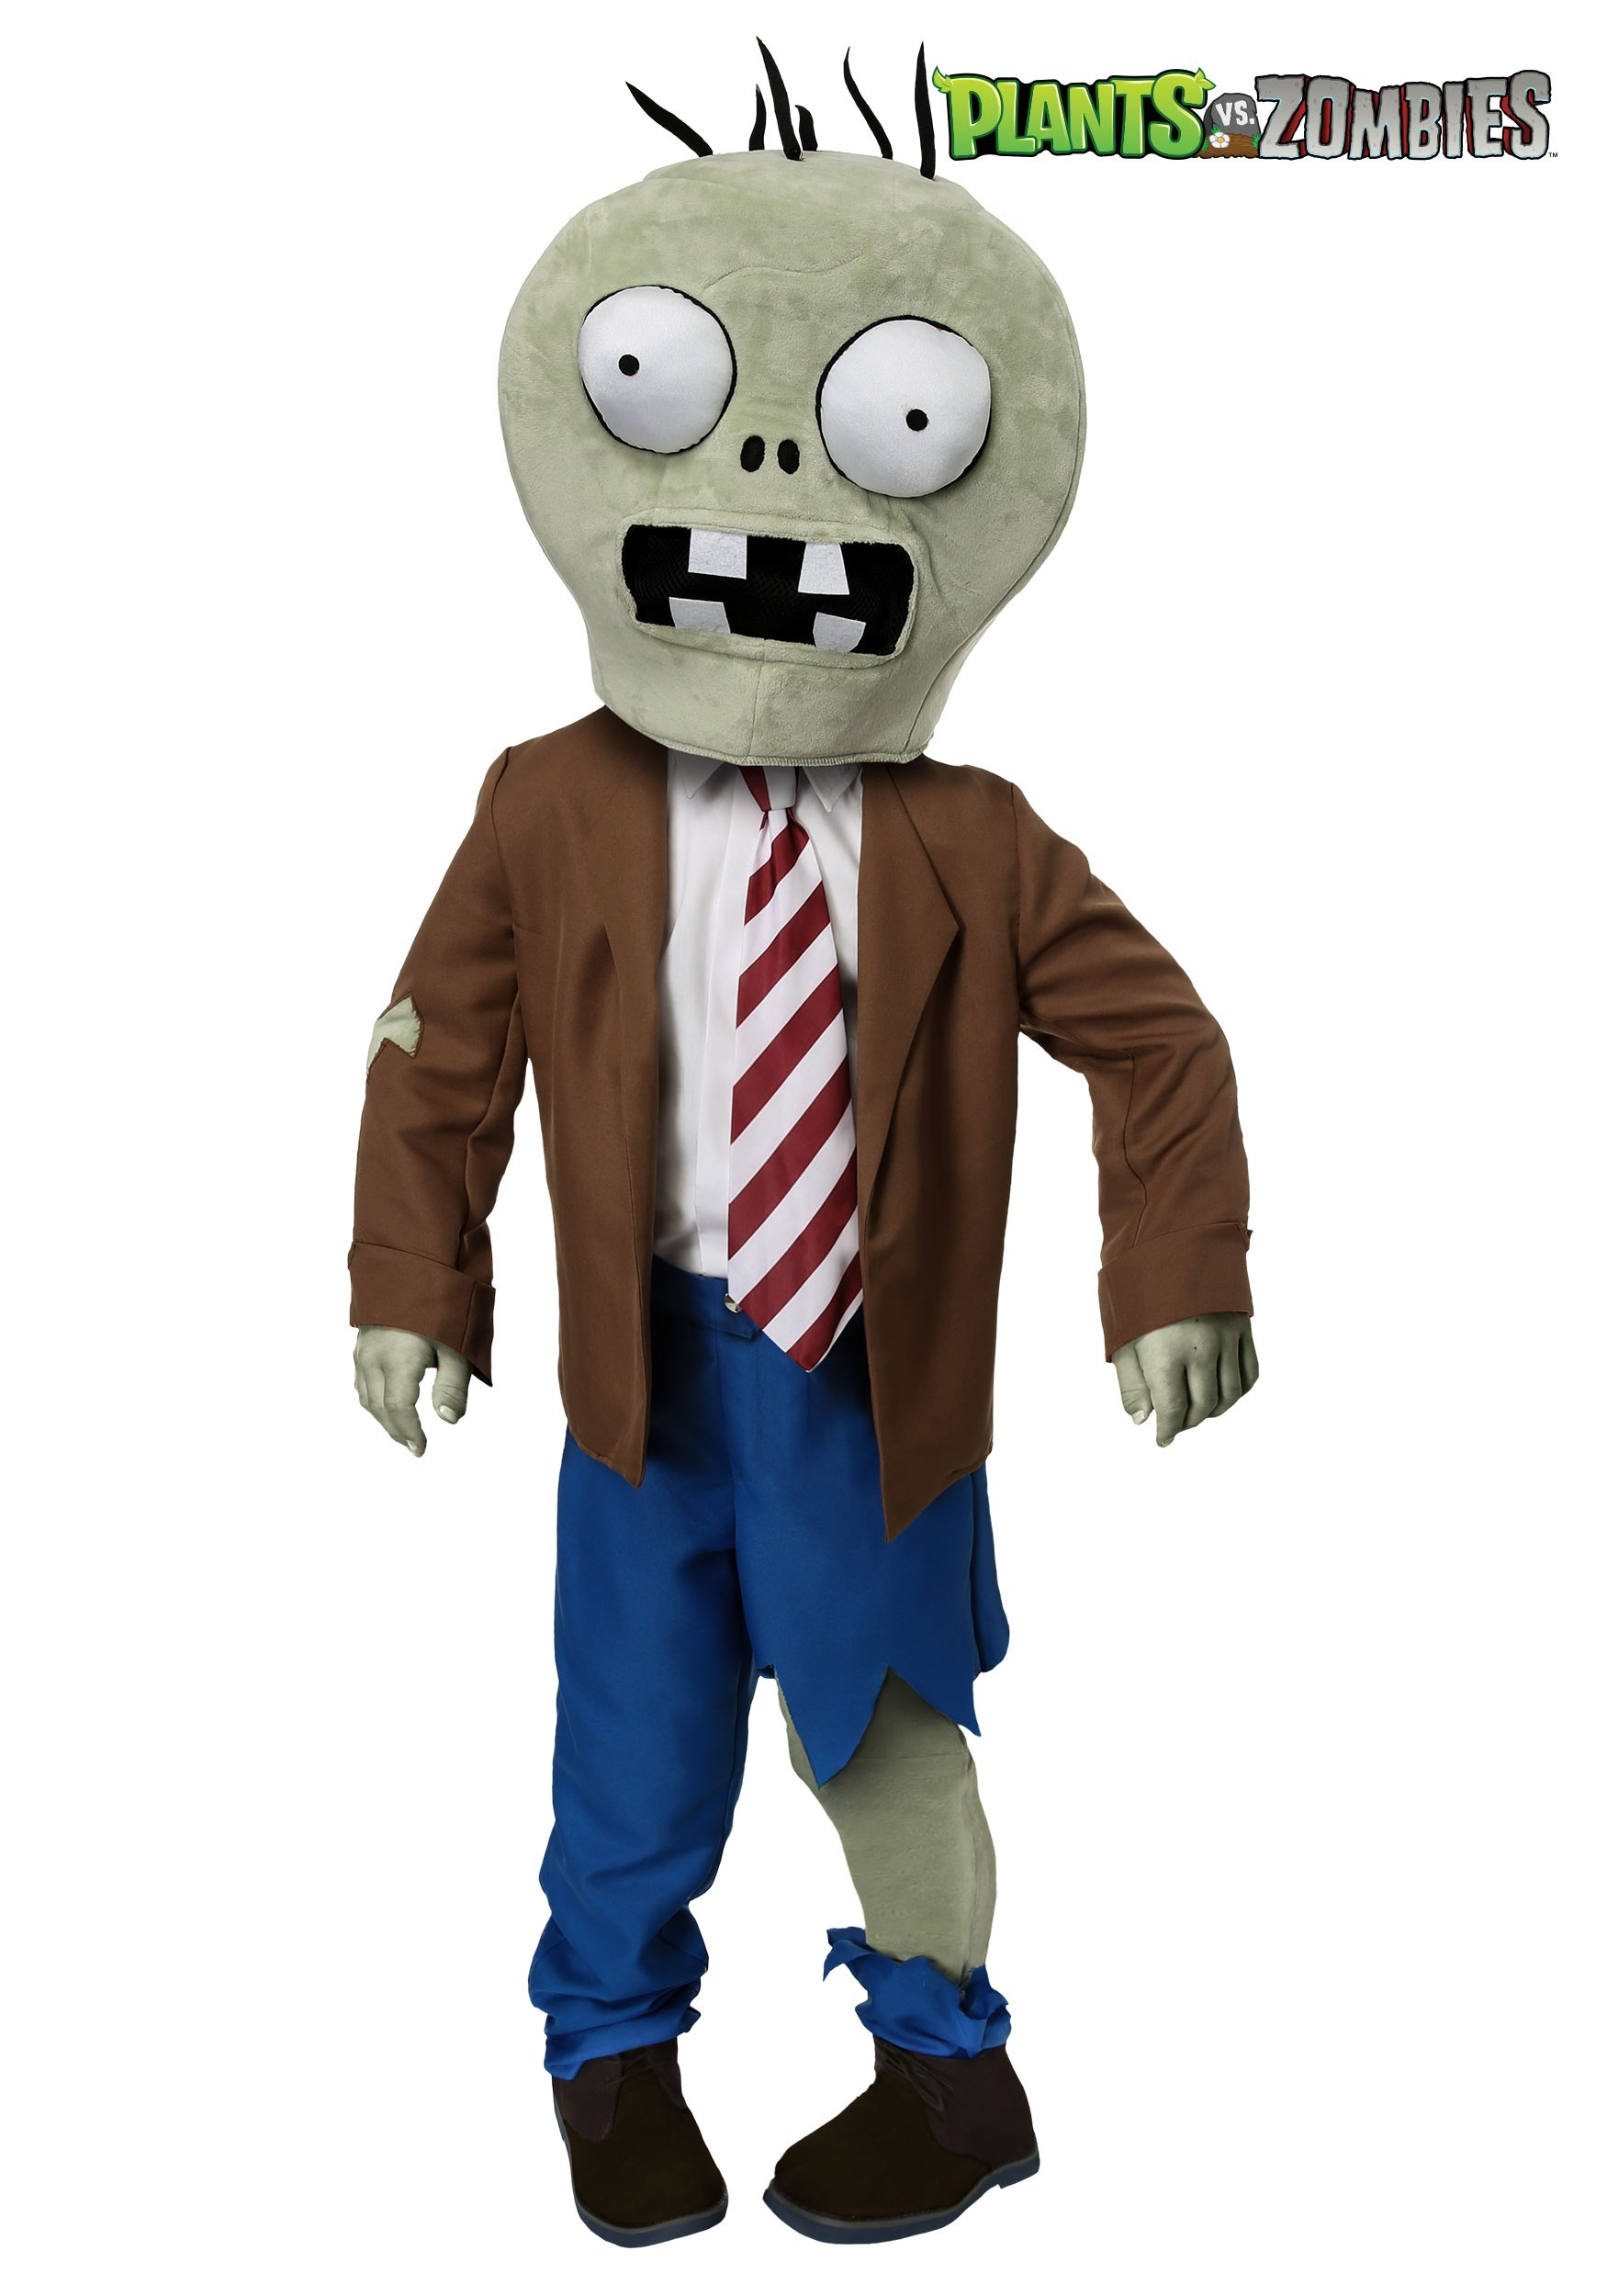 Zombie Halloween Costumes For Toddlers.Toddler Plants Vs Zombies Zombie Costume